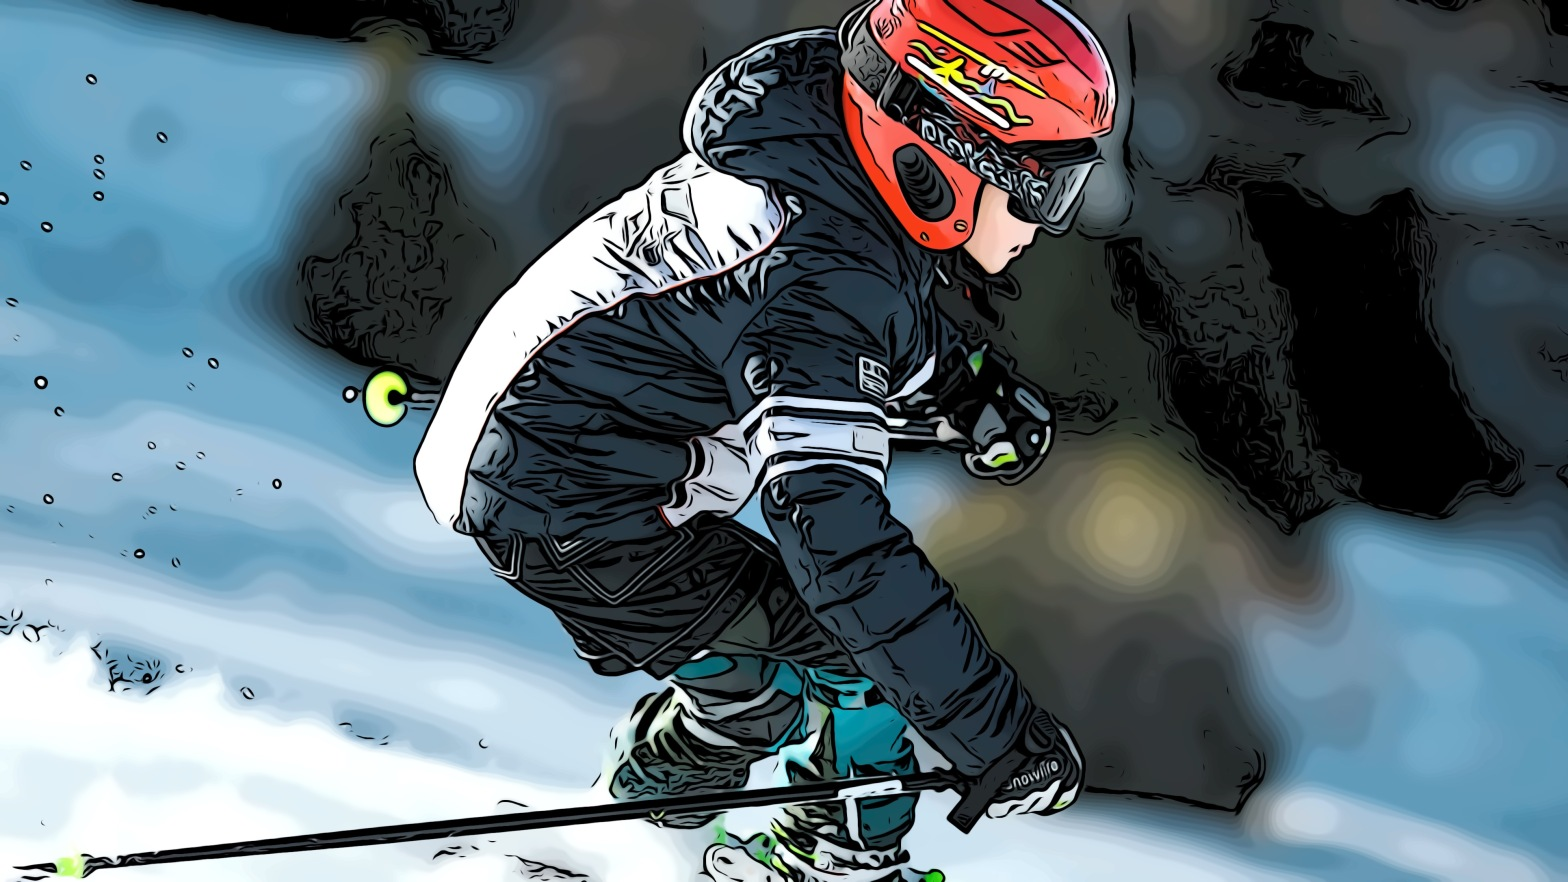 Skiing header comic